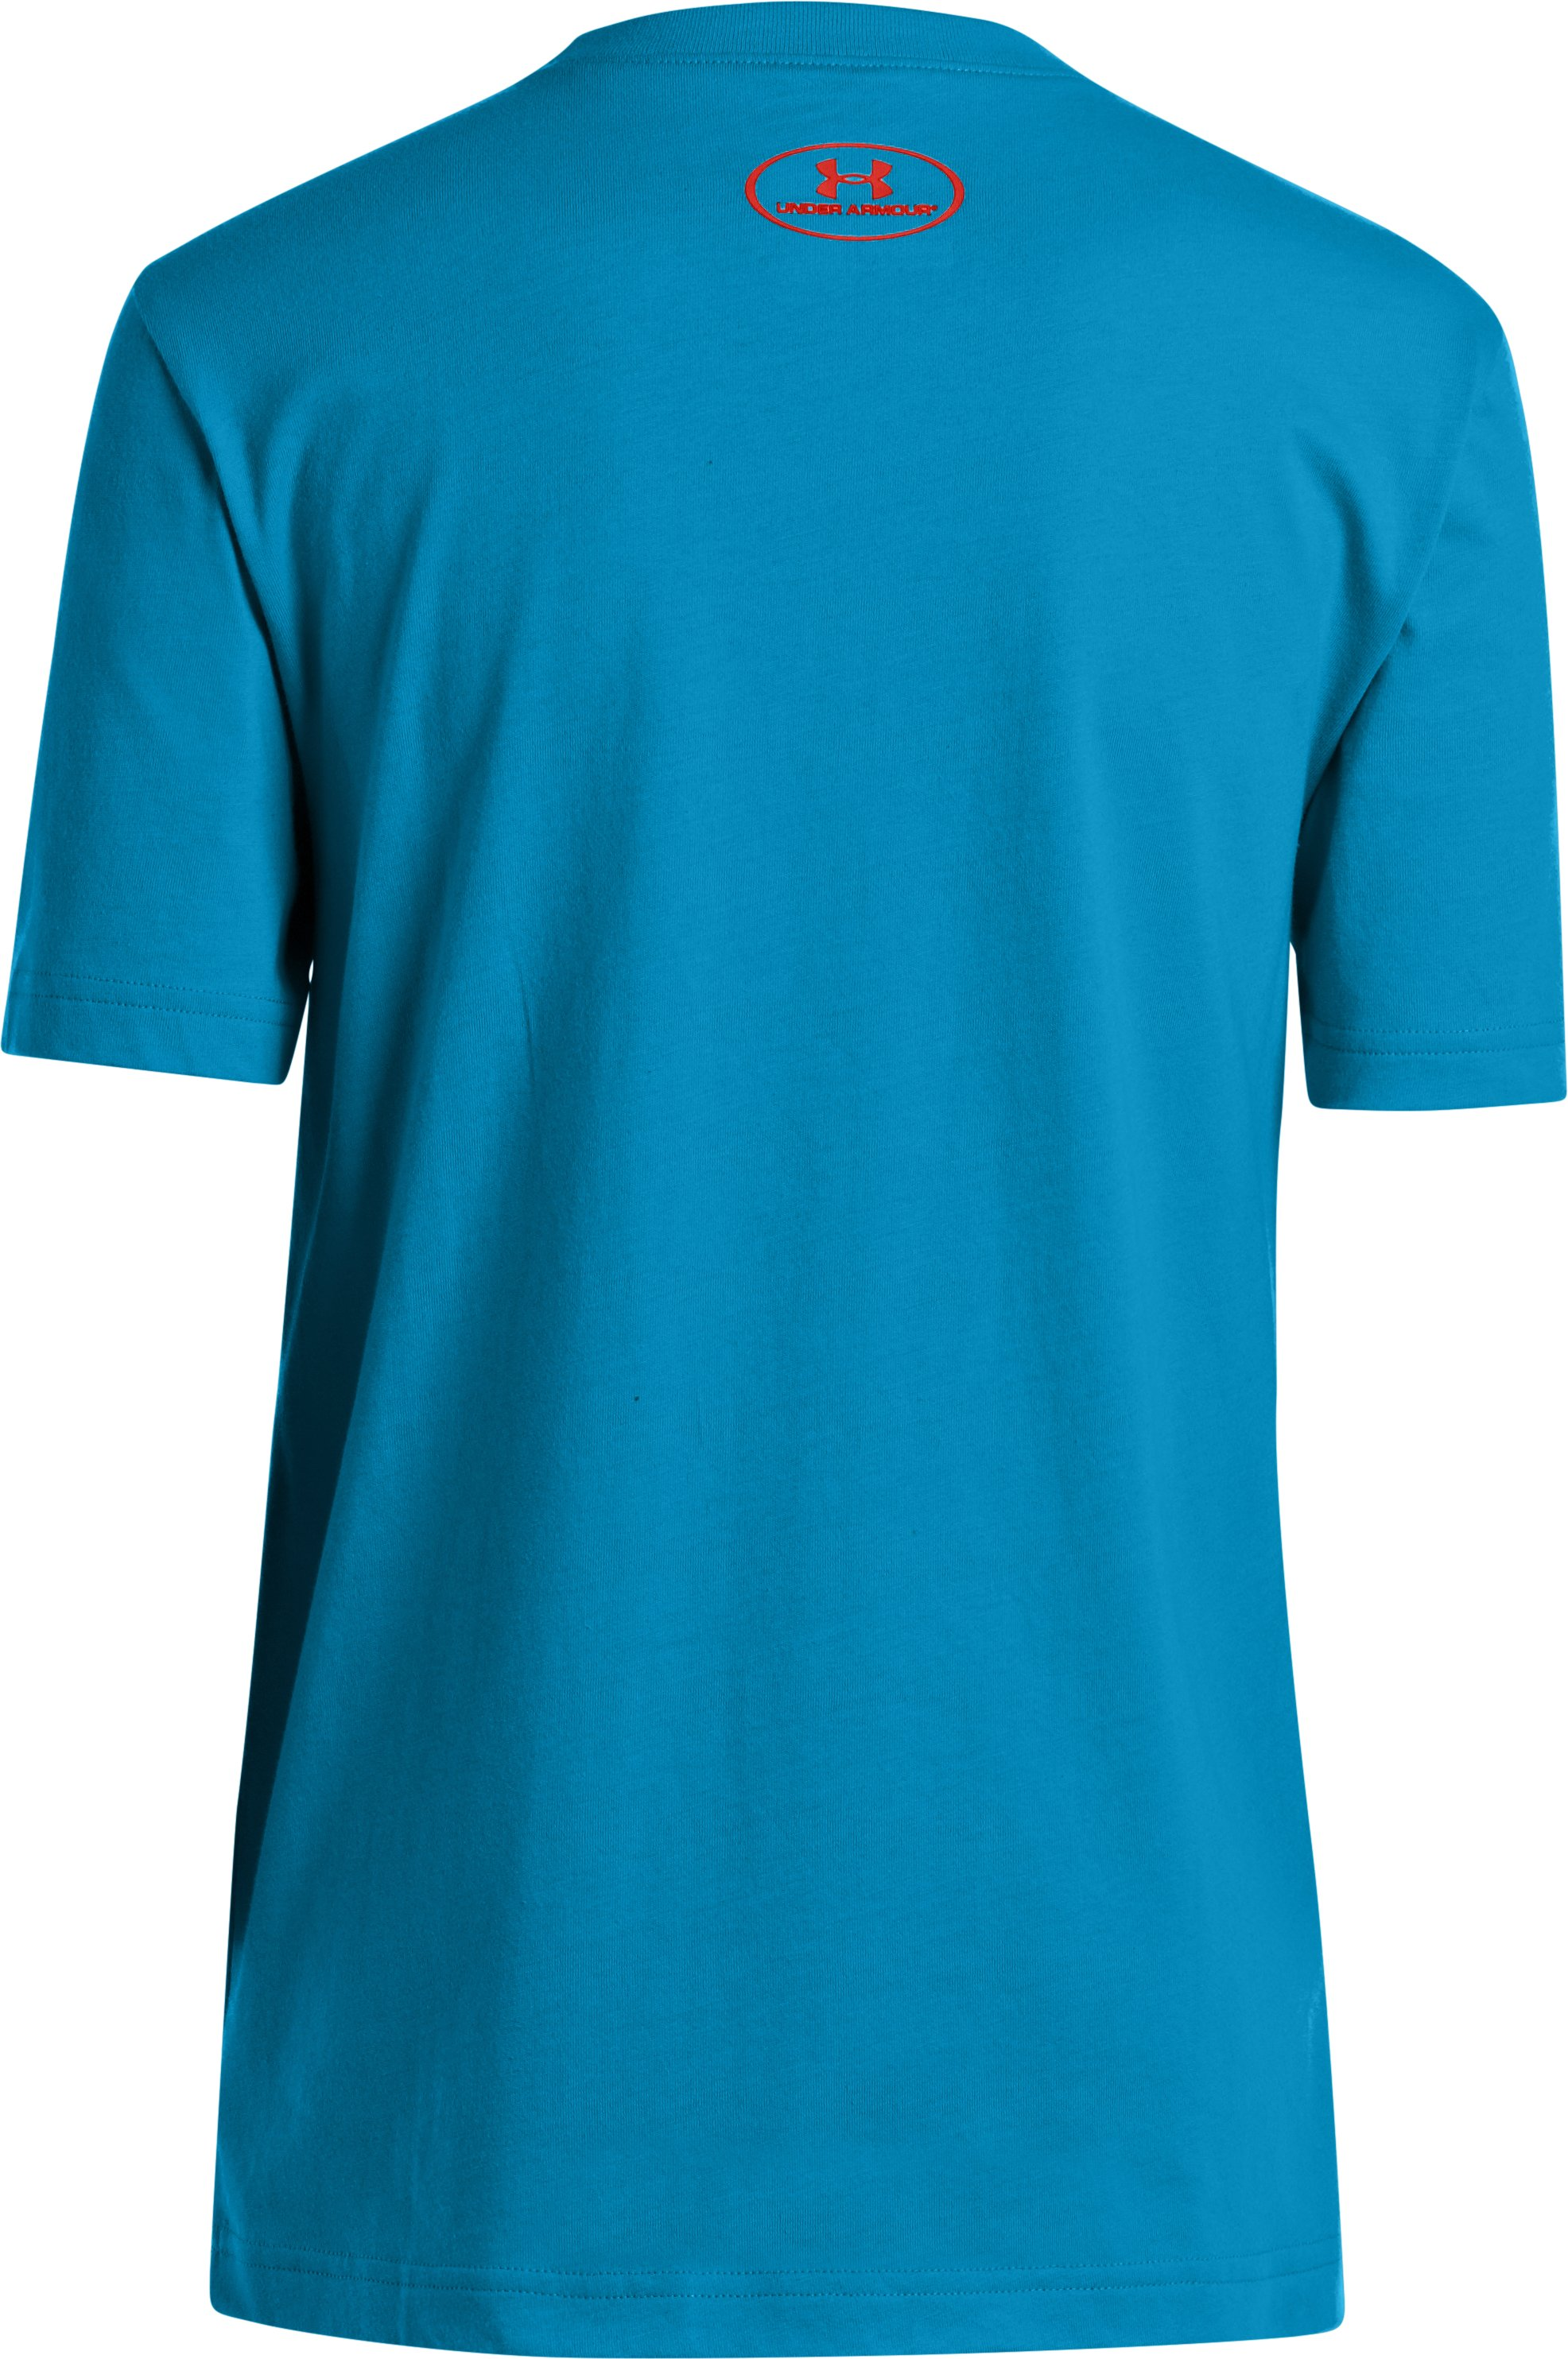 Boys' UA All Sports T-Shirt, PIRATE BLUE